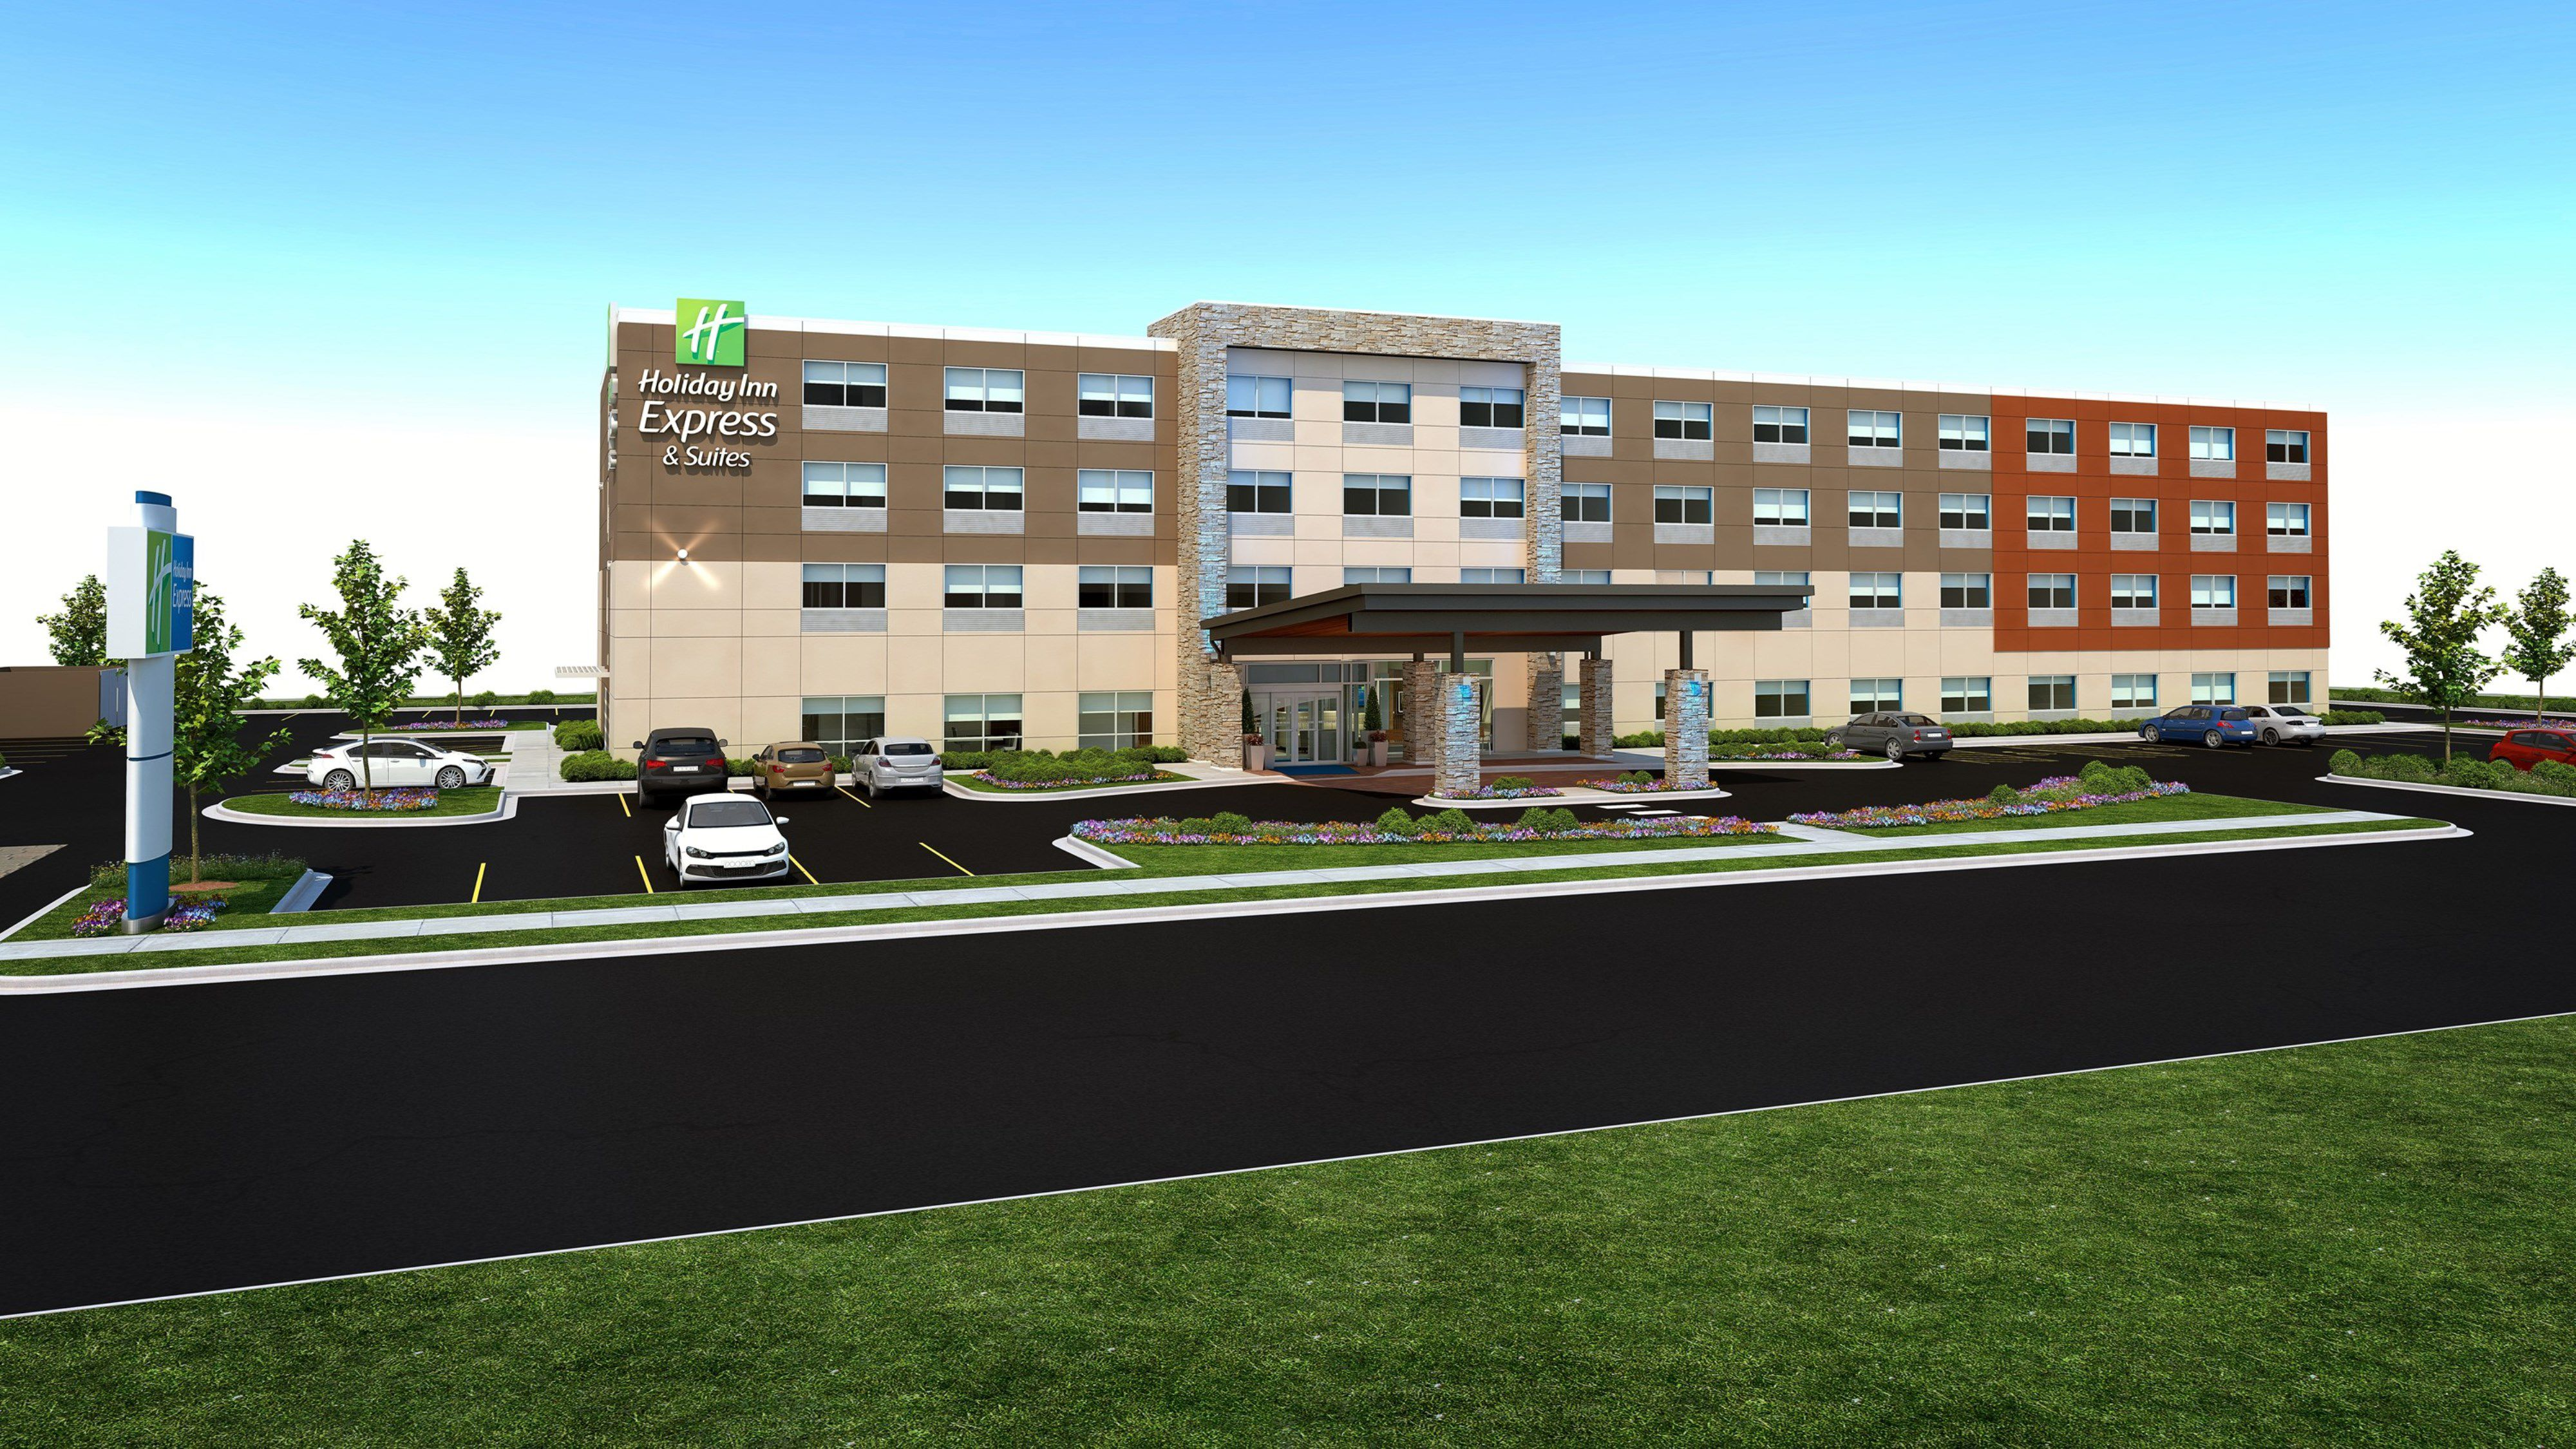 Holiday Inn Express & Suites Shreveport - Downtown image 0